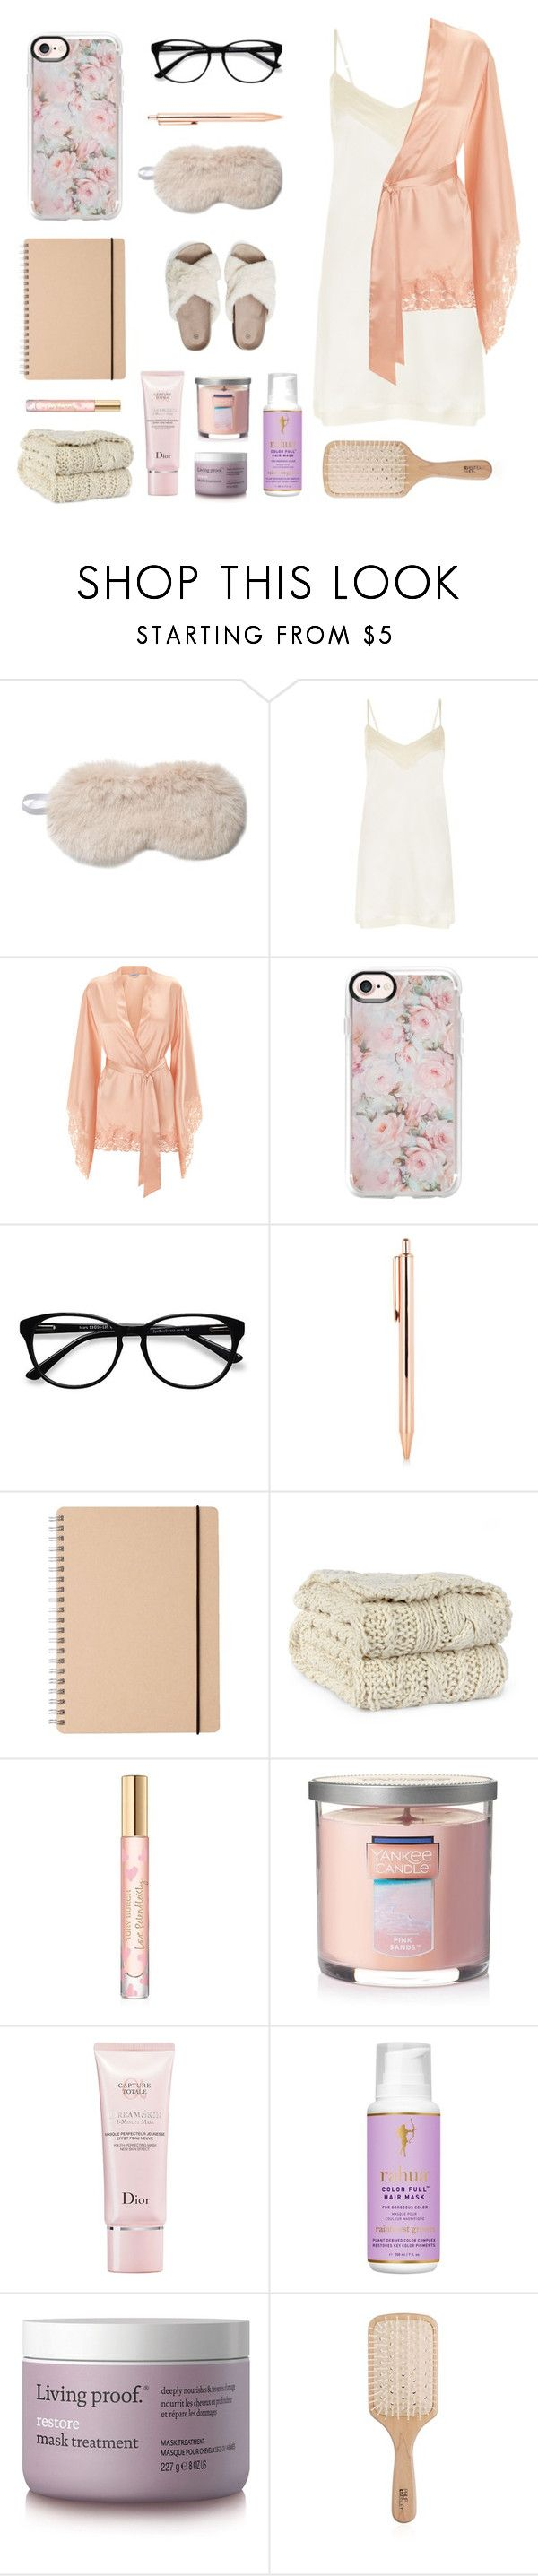 """""""Sleep In: Lazy"""" by hazelannf ❤ liked on Polyvore featuring Fabulous-Furs, La Perla, Casetify, EyeBuyDirect.com, Tory Burch, Yankee Candle, Christian Dior, RAHUA, Living Proof and Philip Kingsley"""